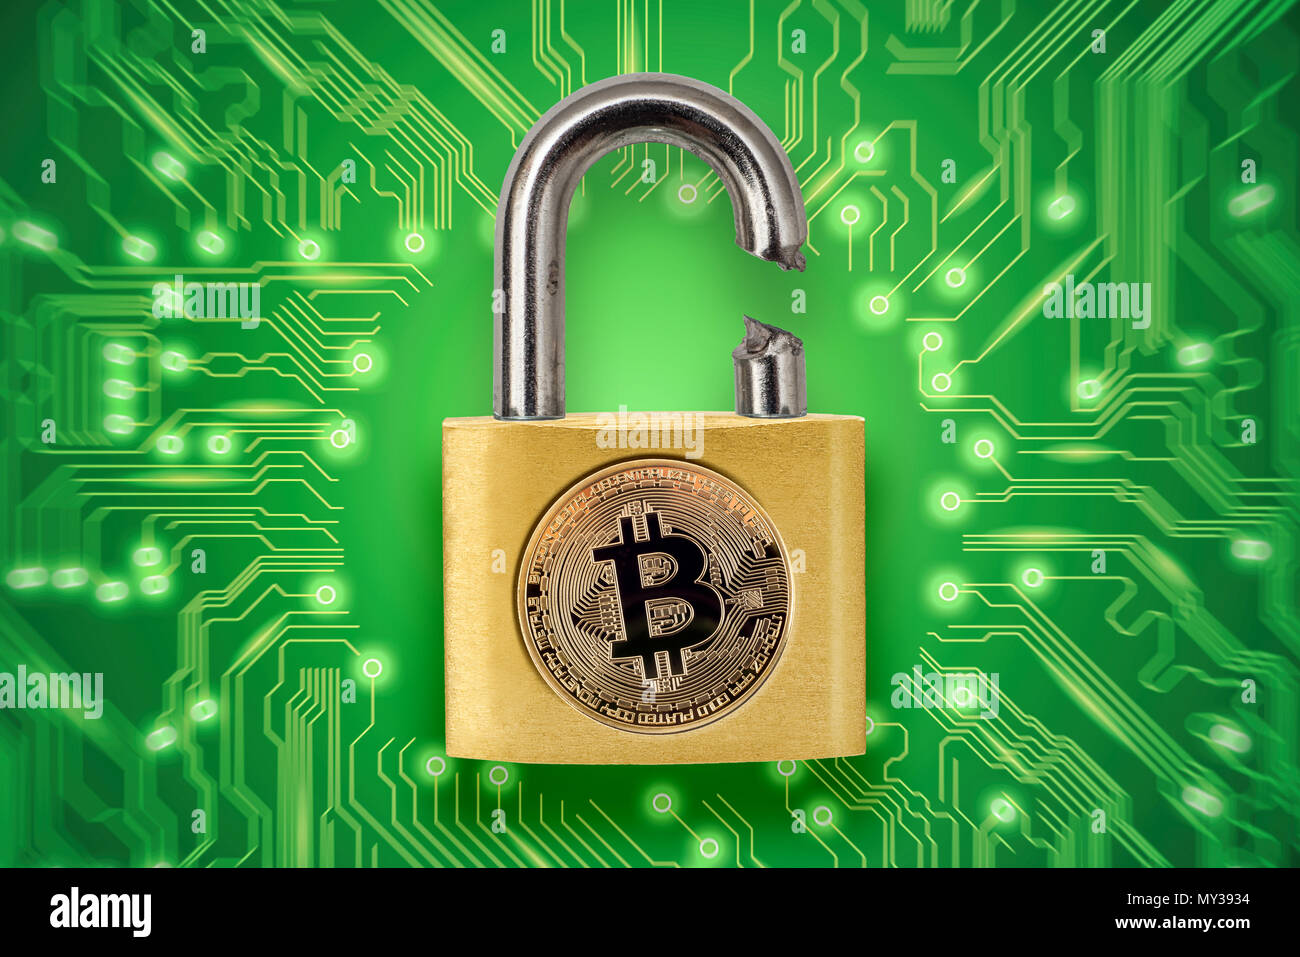 Broken padlock with bitcoin logo. Conceptual picture illustrating crypto currency hacking and theft. - Stock Image